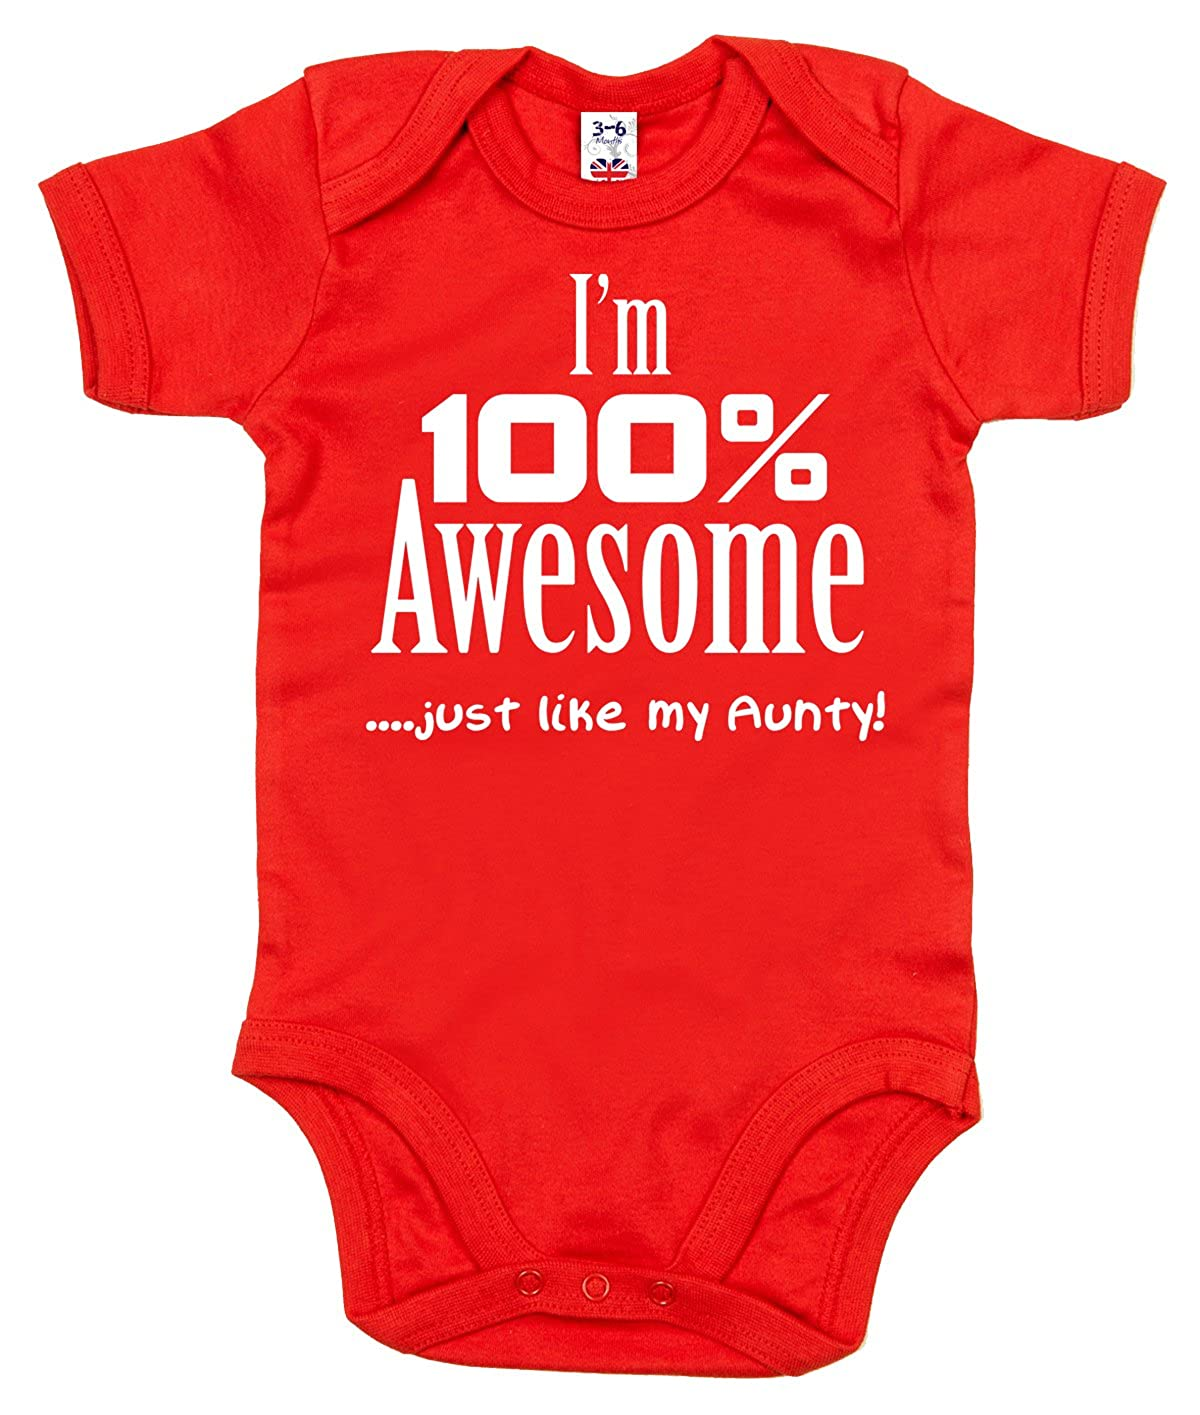 Dirty Fingers, I'm 100% Awesome, just like my Aunty, Baby Girl Bodysuit I' m 100% Awesome